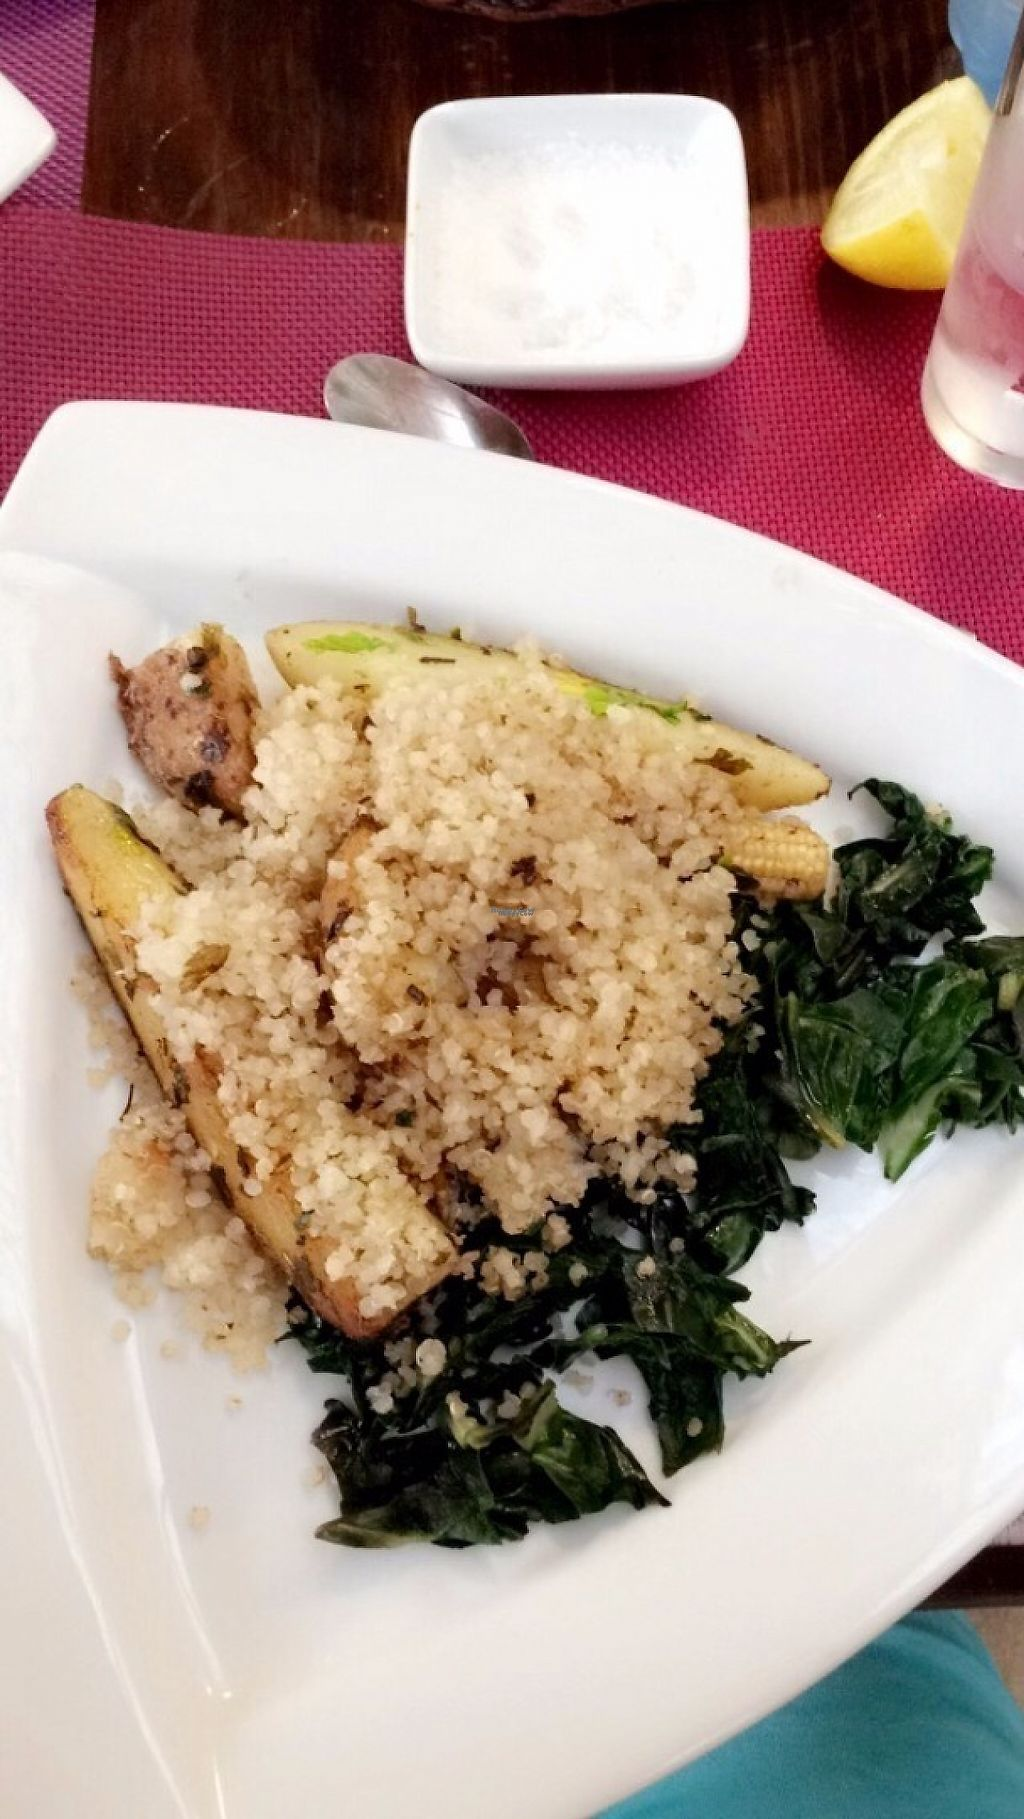 """Photo of Innatura  by <a href=""""/members/profile/SofiaC"""">SofiaC</a> <br/>Quinoa with spinach and potatoes <br/> February 7, 2017  - <a href='/contact/abuse/image/34908/223976'>Report</a>"""